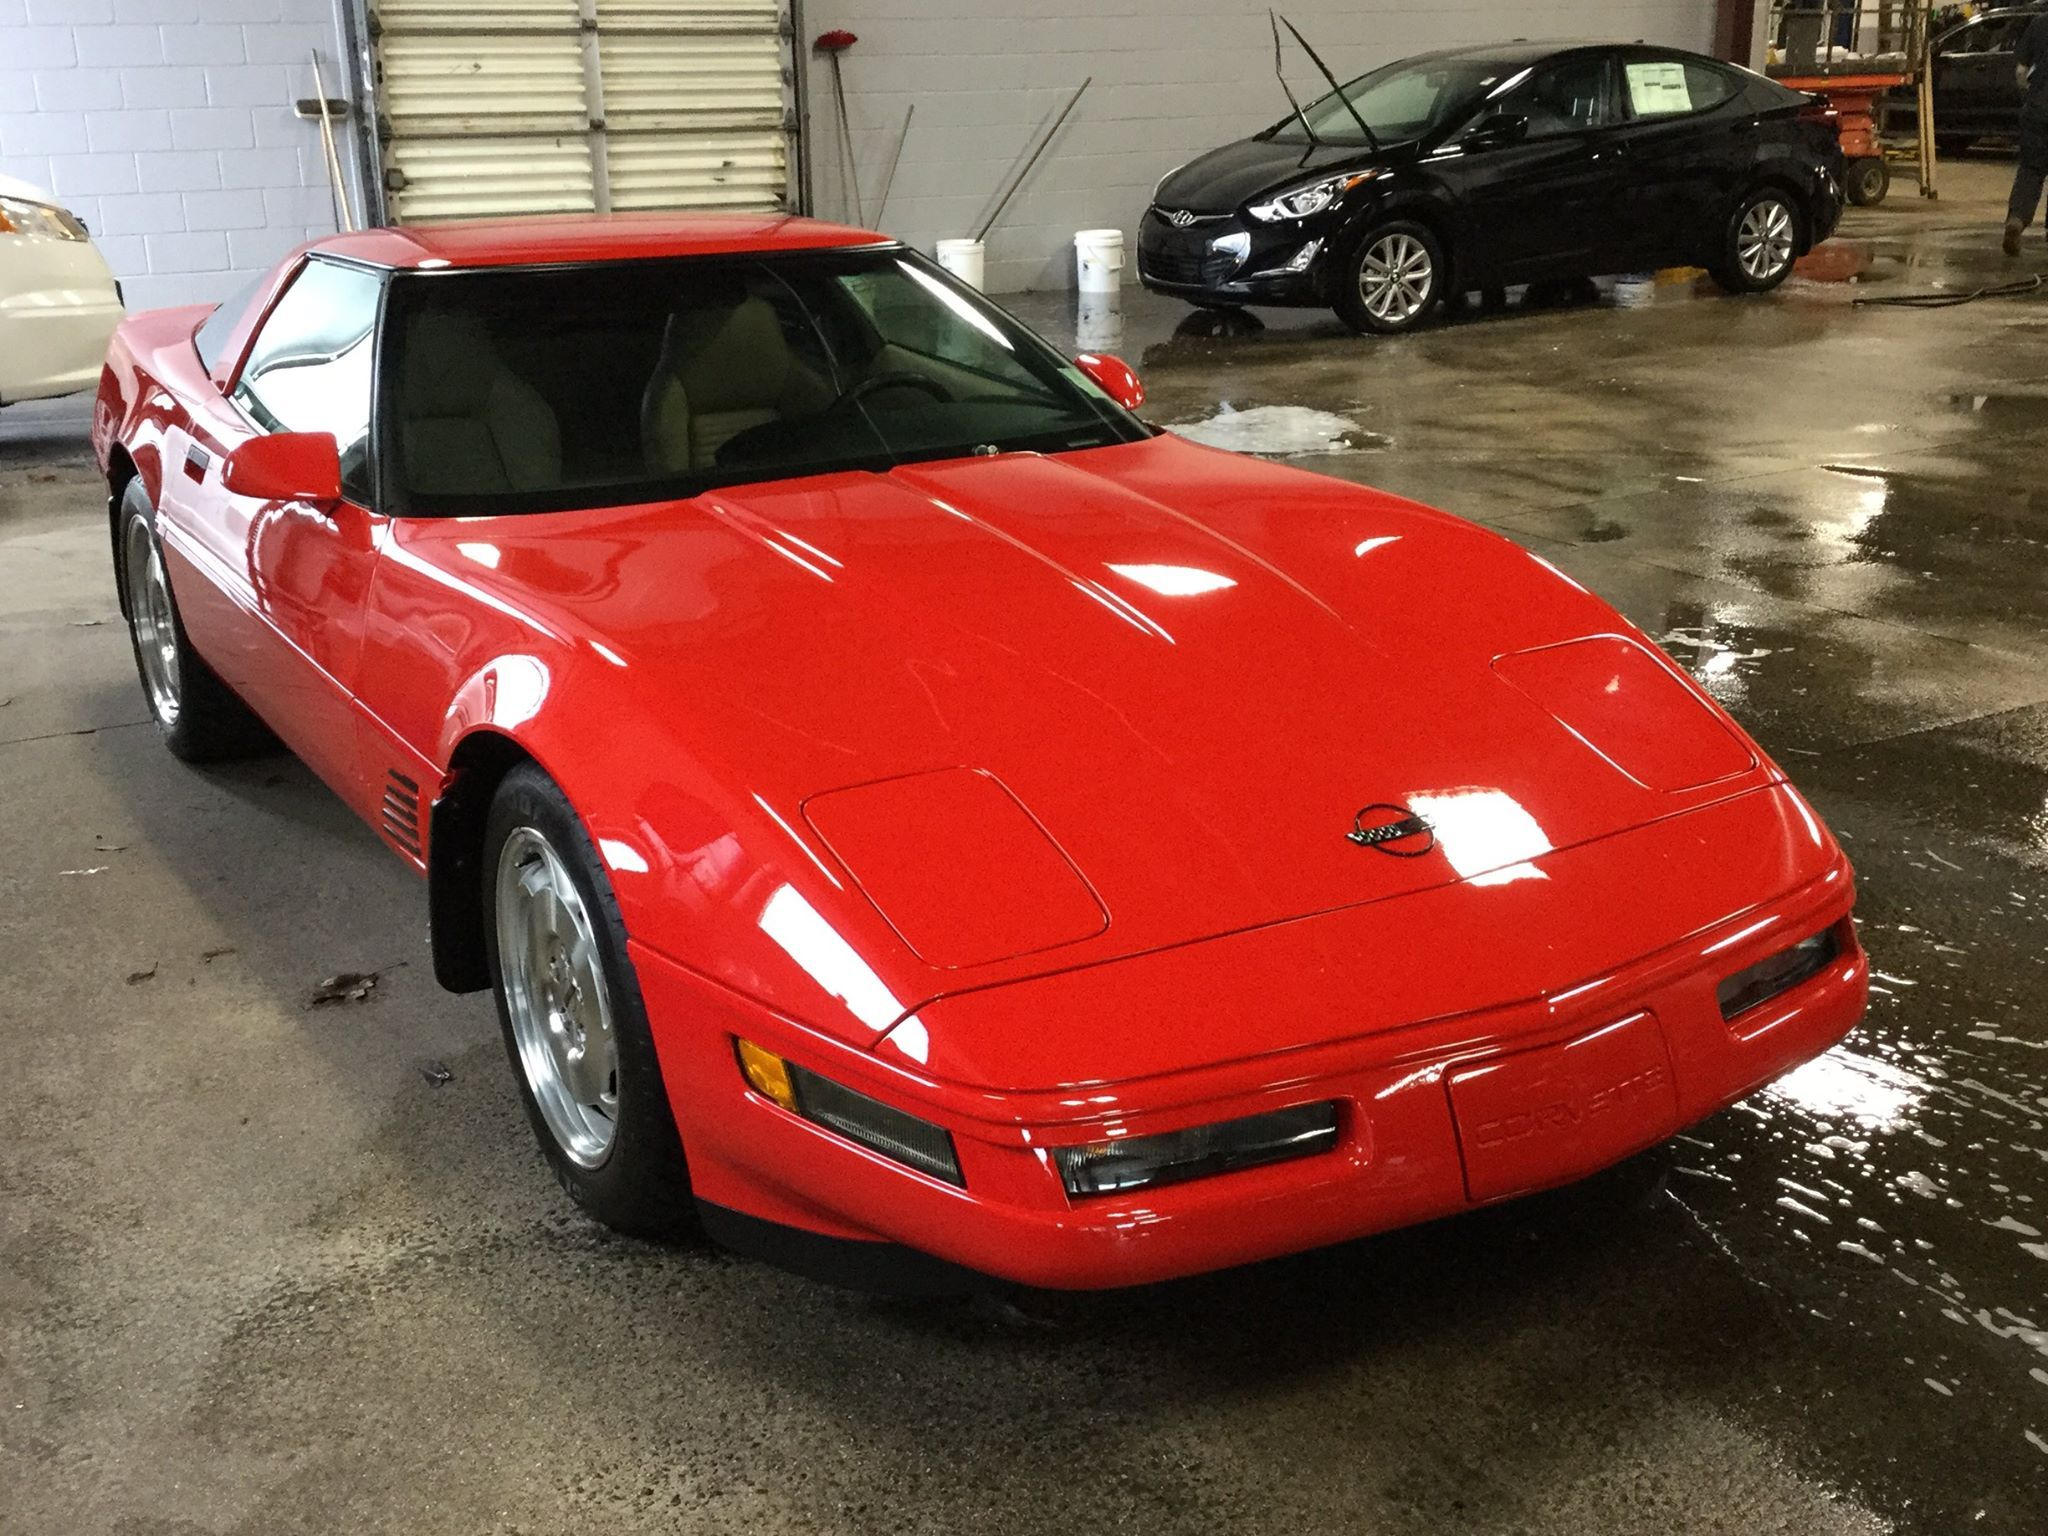 1996 Corvette Lt4 In Torch Red With Light Beige Interior And Only 9 543 Miles On The Odometer